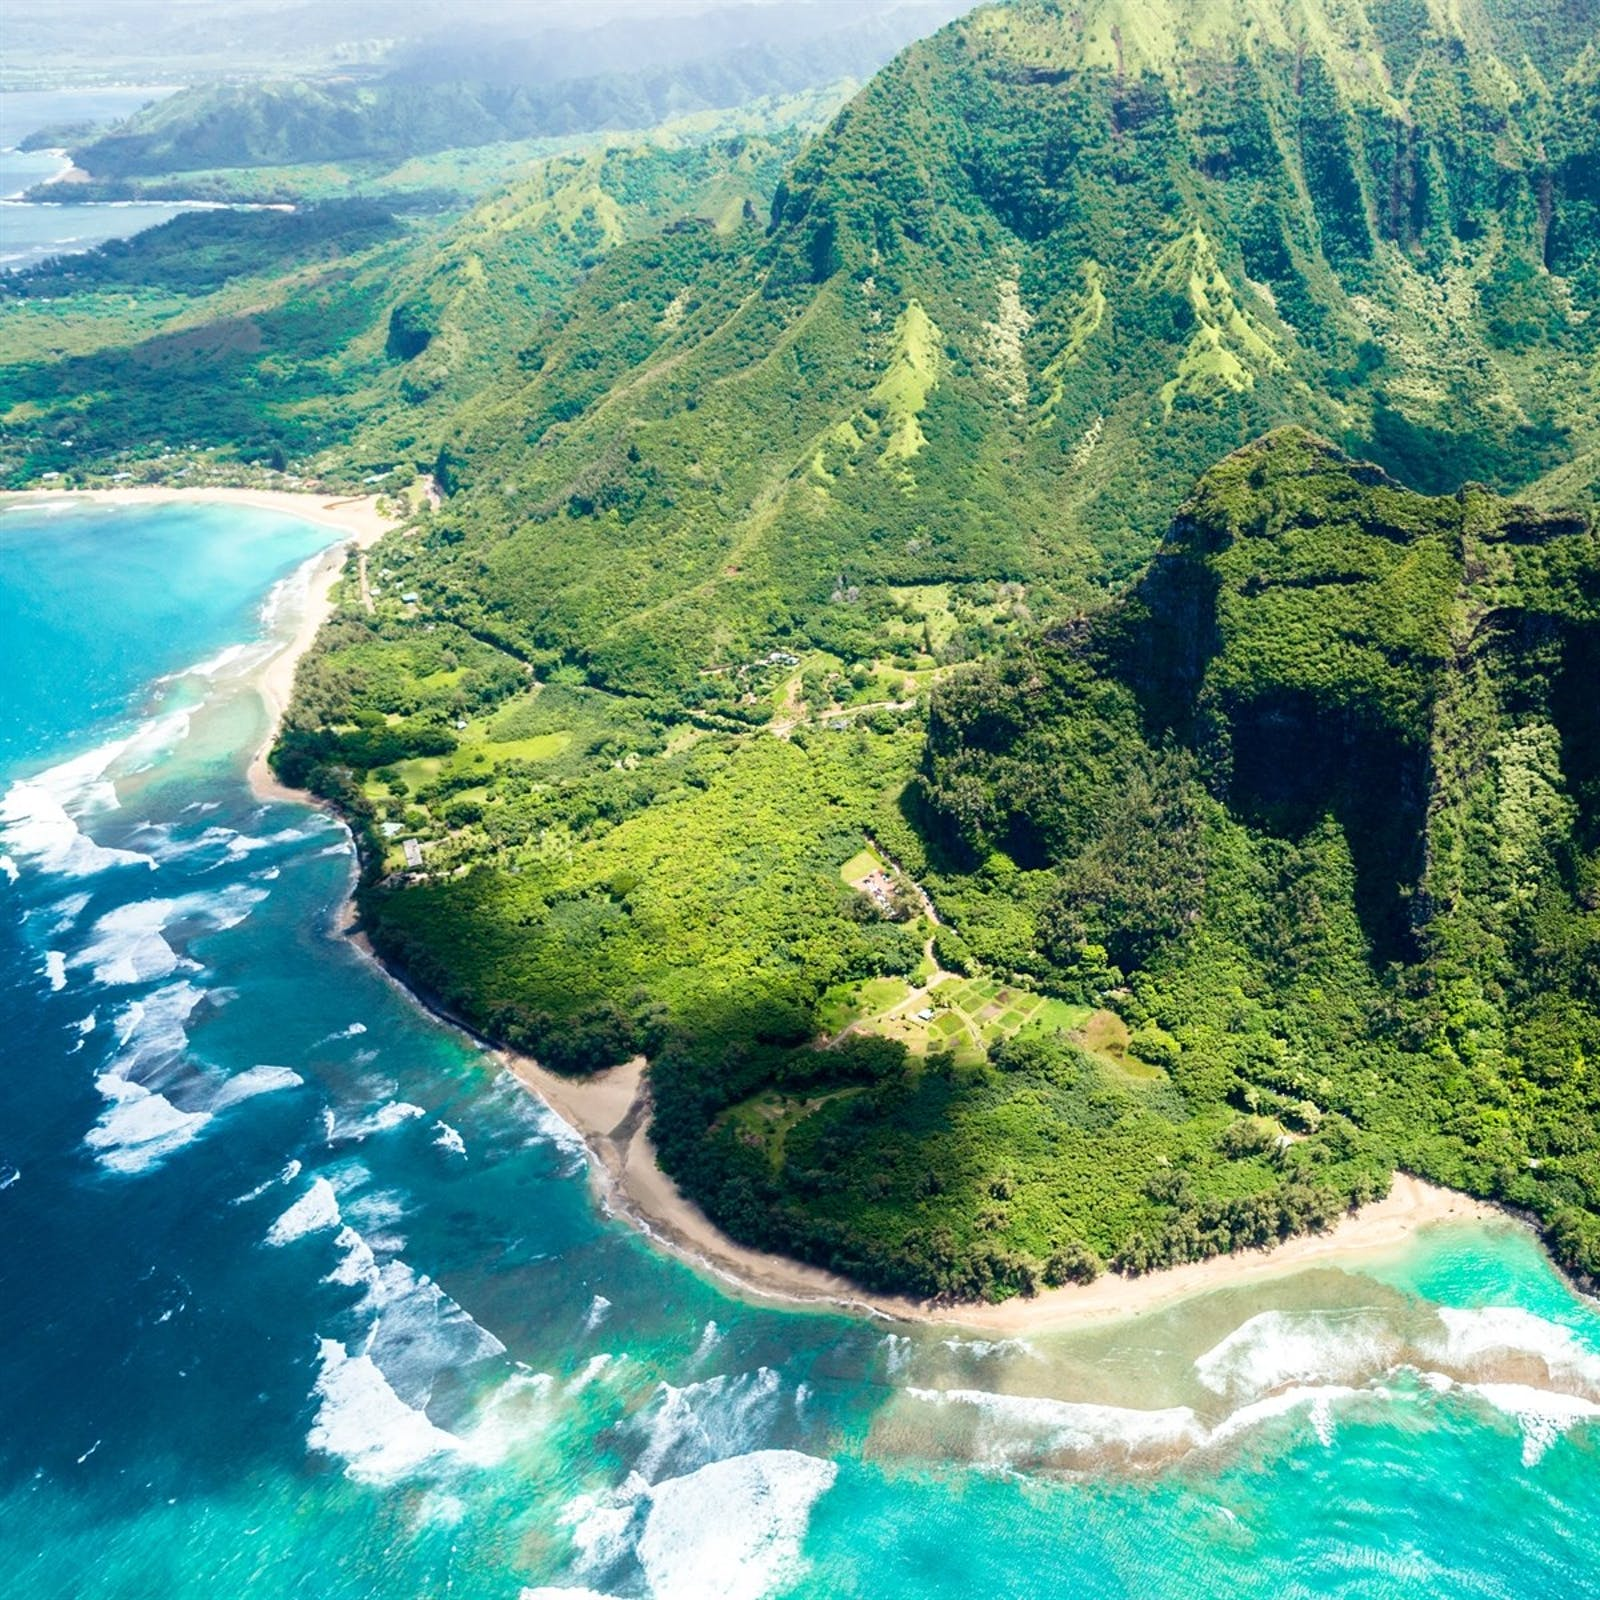 Big Island Beaches: Hawaii Valleys, Beaches & Volcanoes, Kauai, Maui &The Big